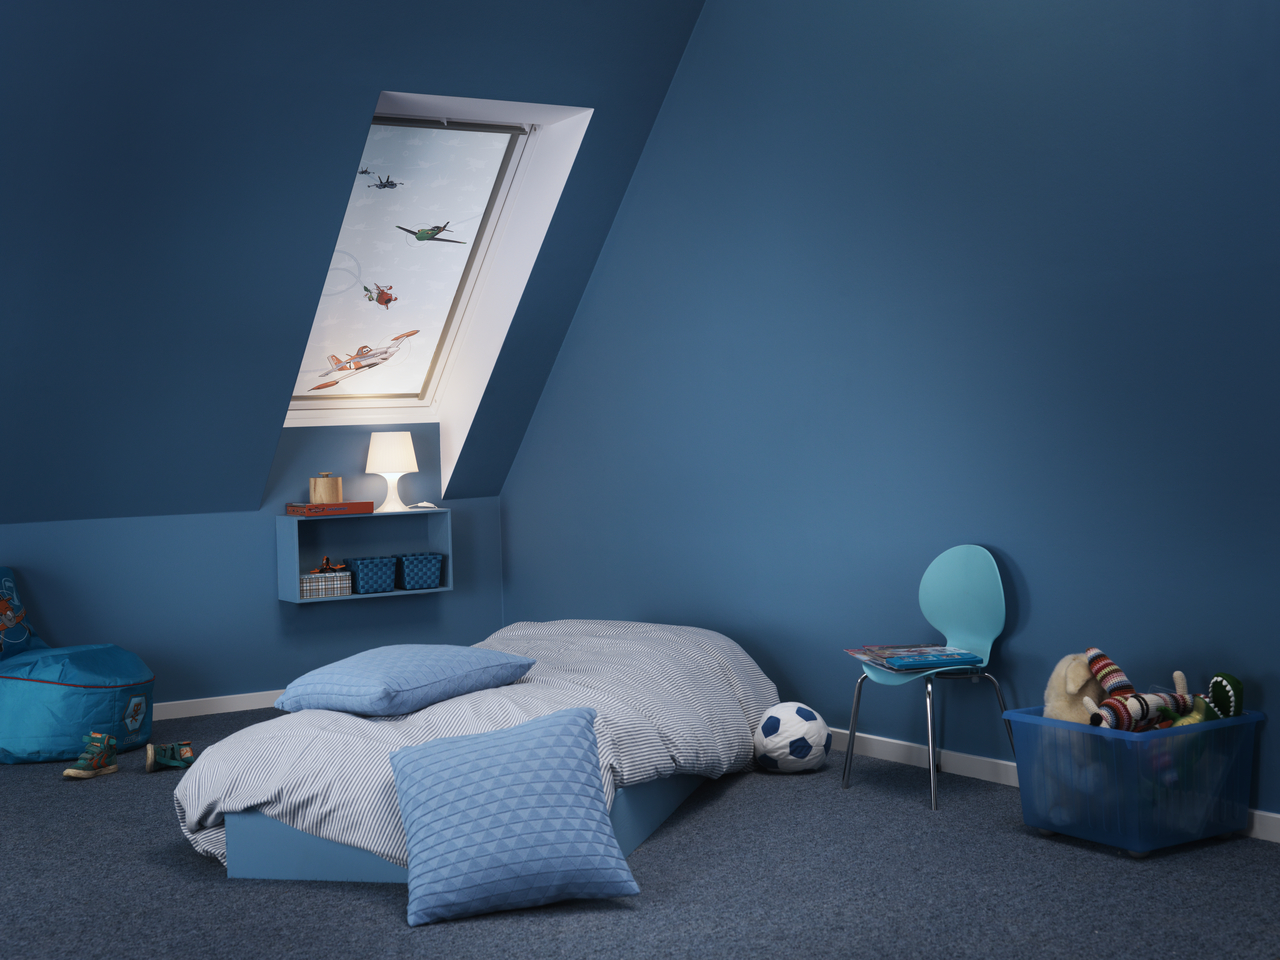 Una camera da letto blu per riposare meglio - Mansarda.it